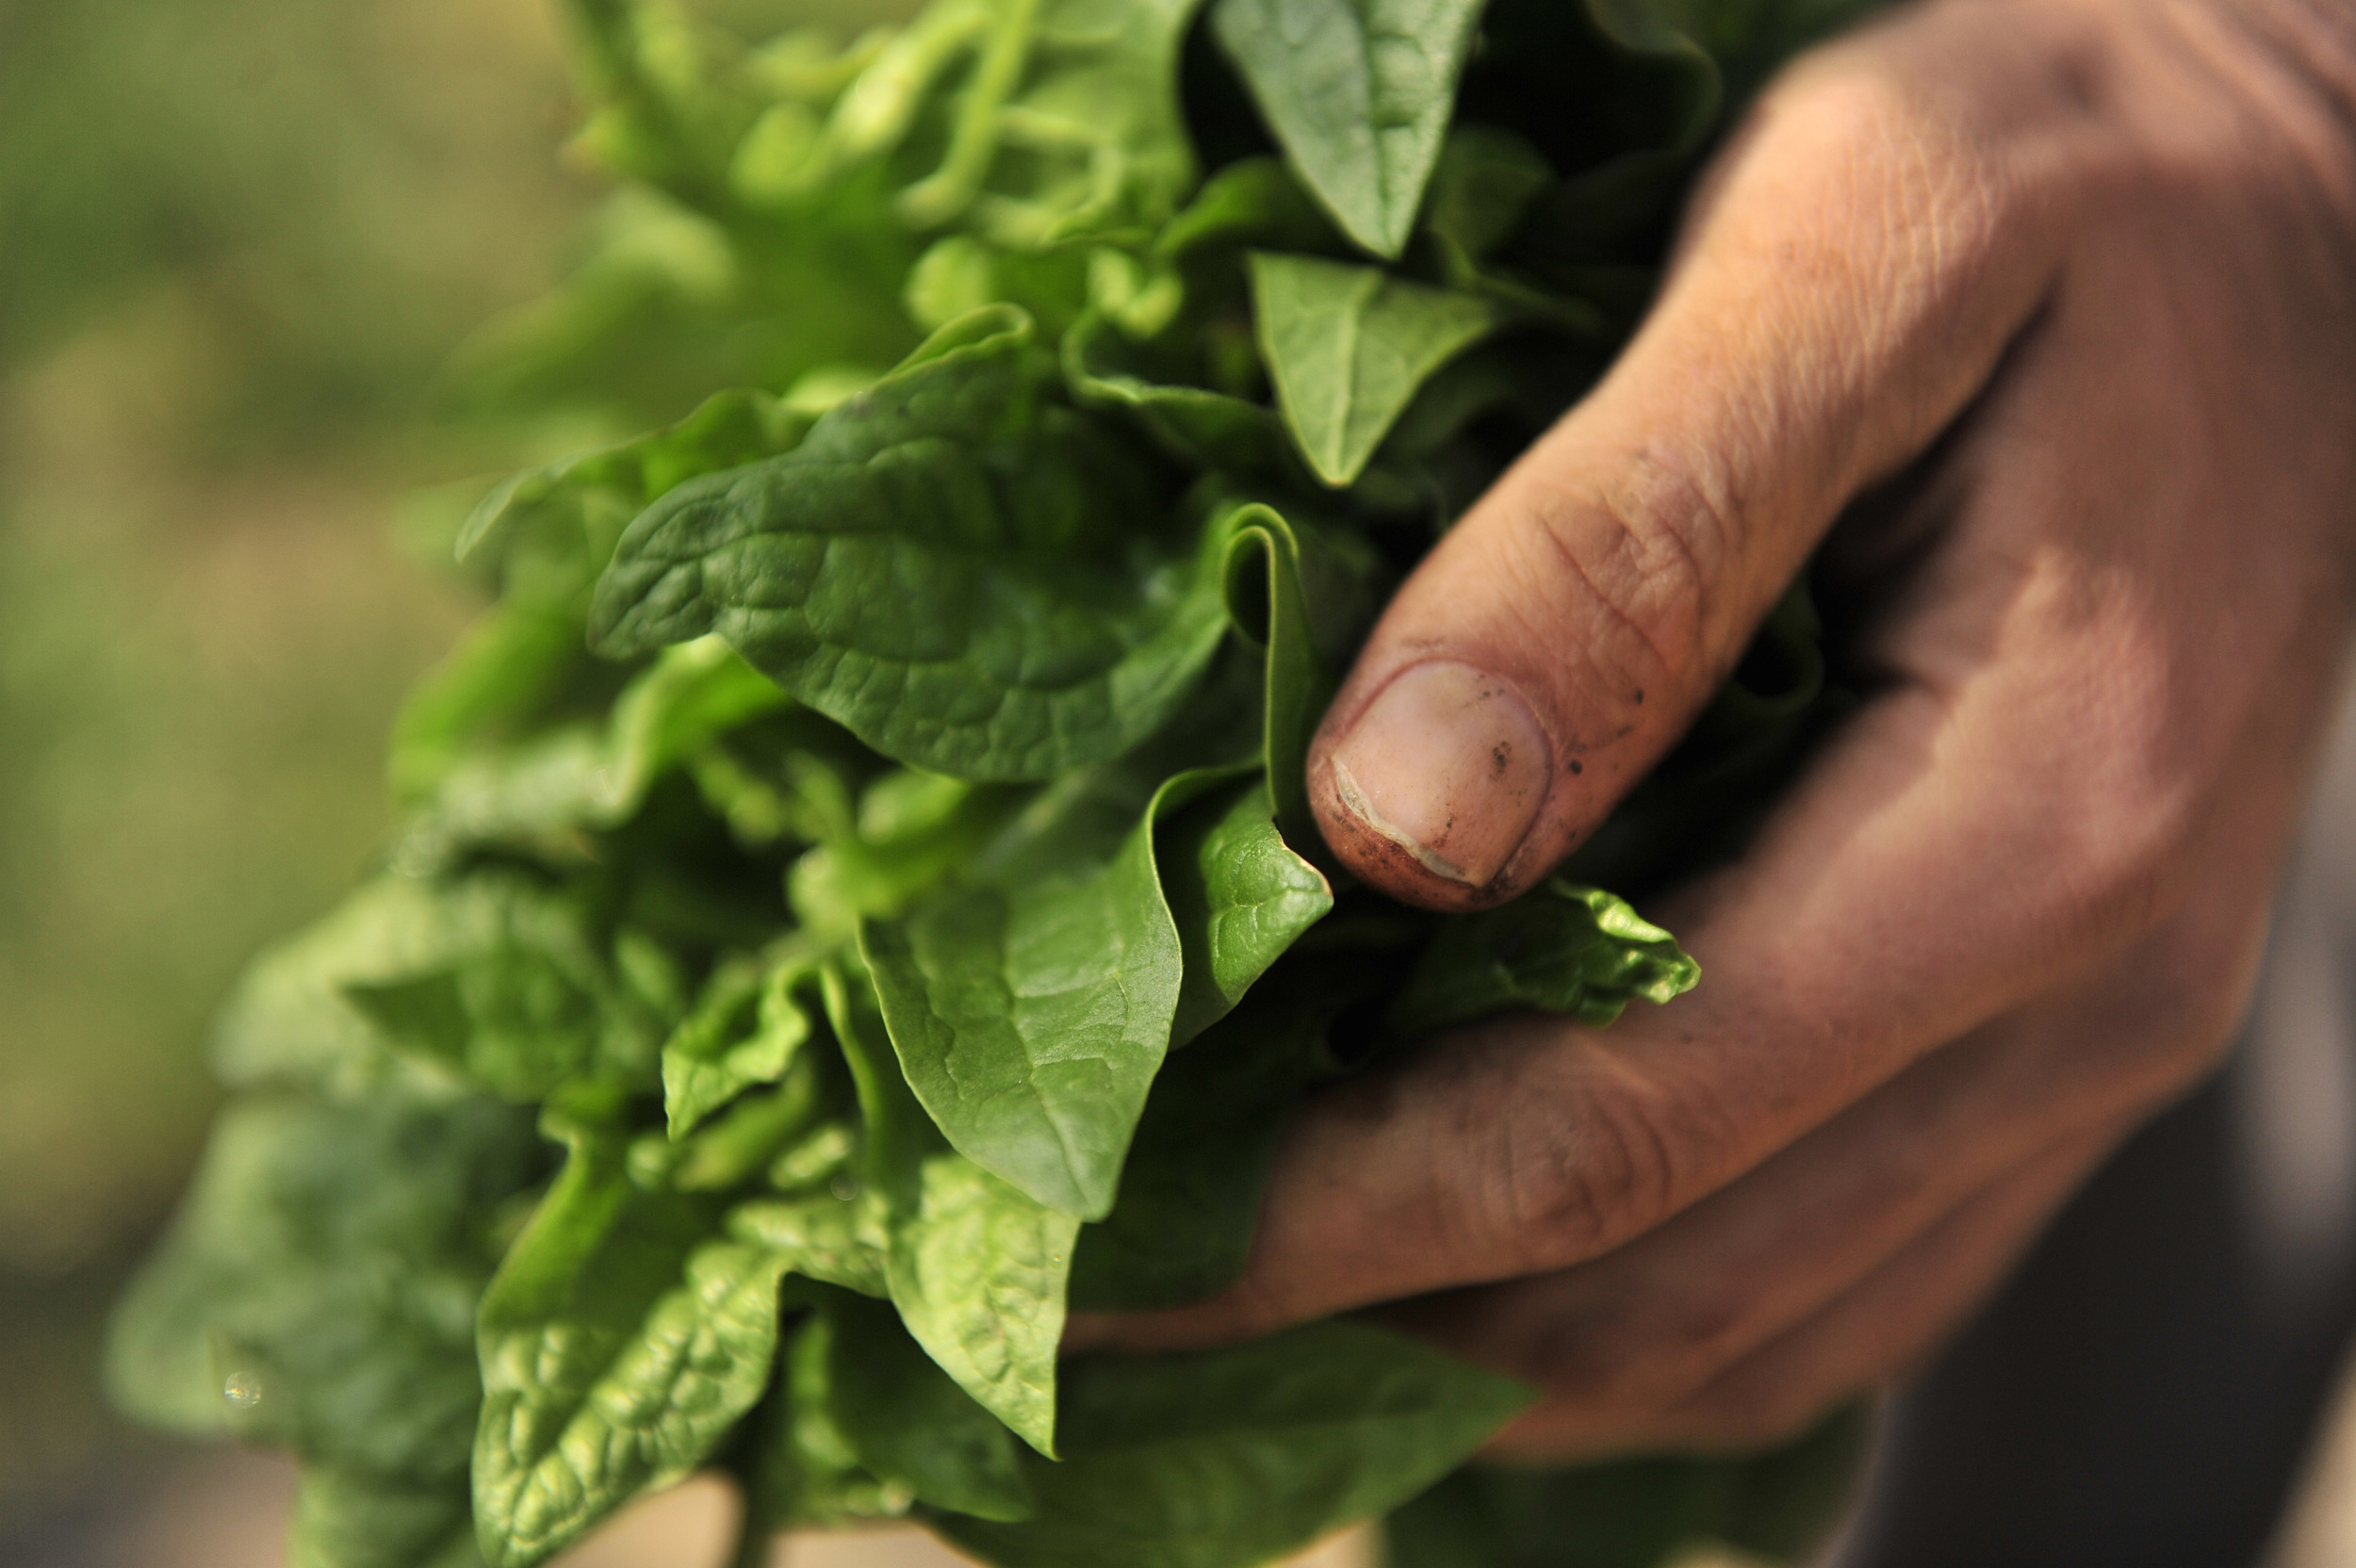 Jeremy Lekich of Nashville Foodscapes harvests spinach from a bed in Sylvan Park in Nashville, Tenn.